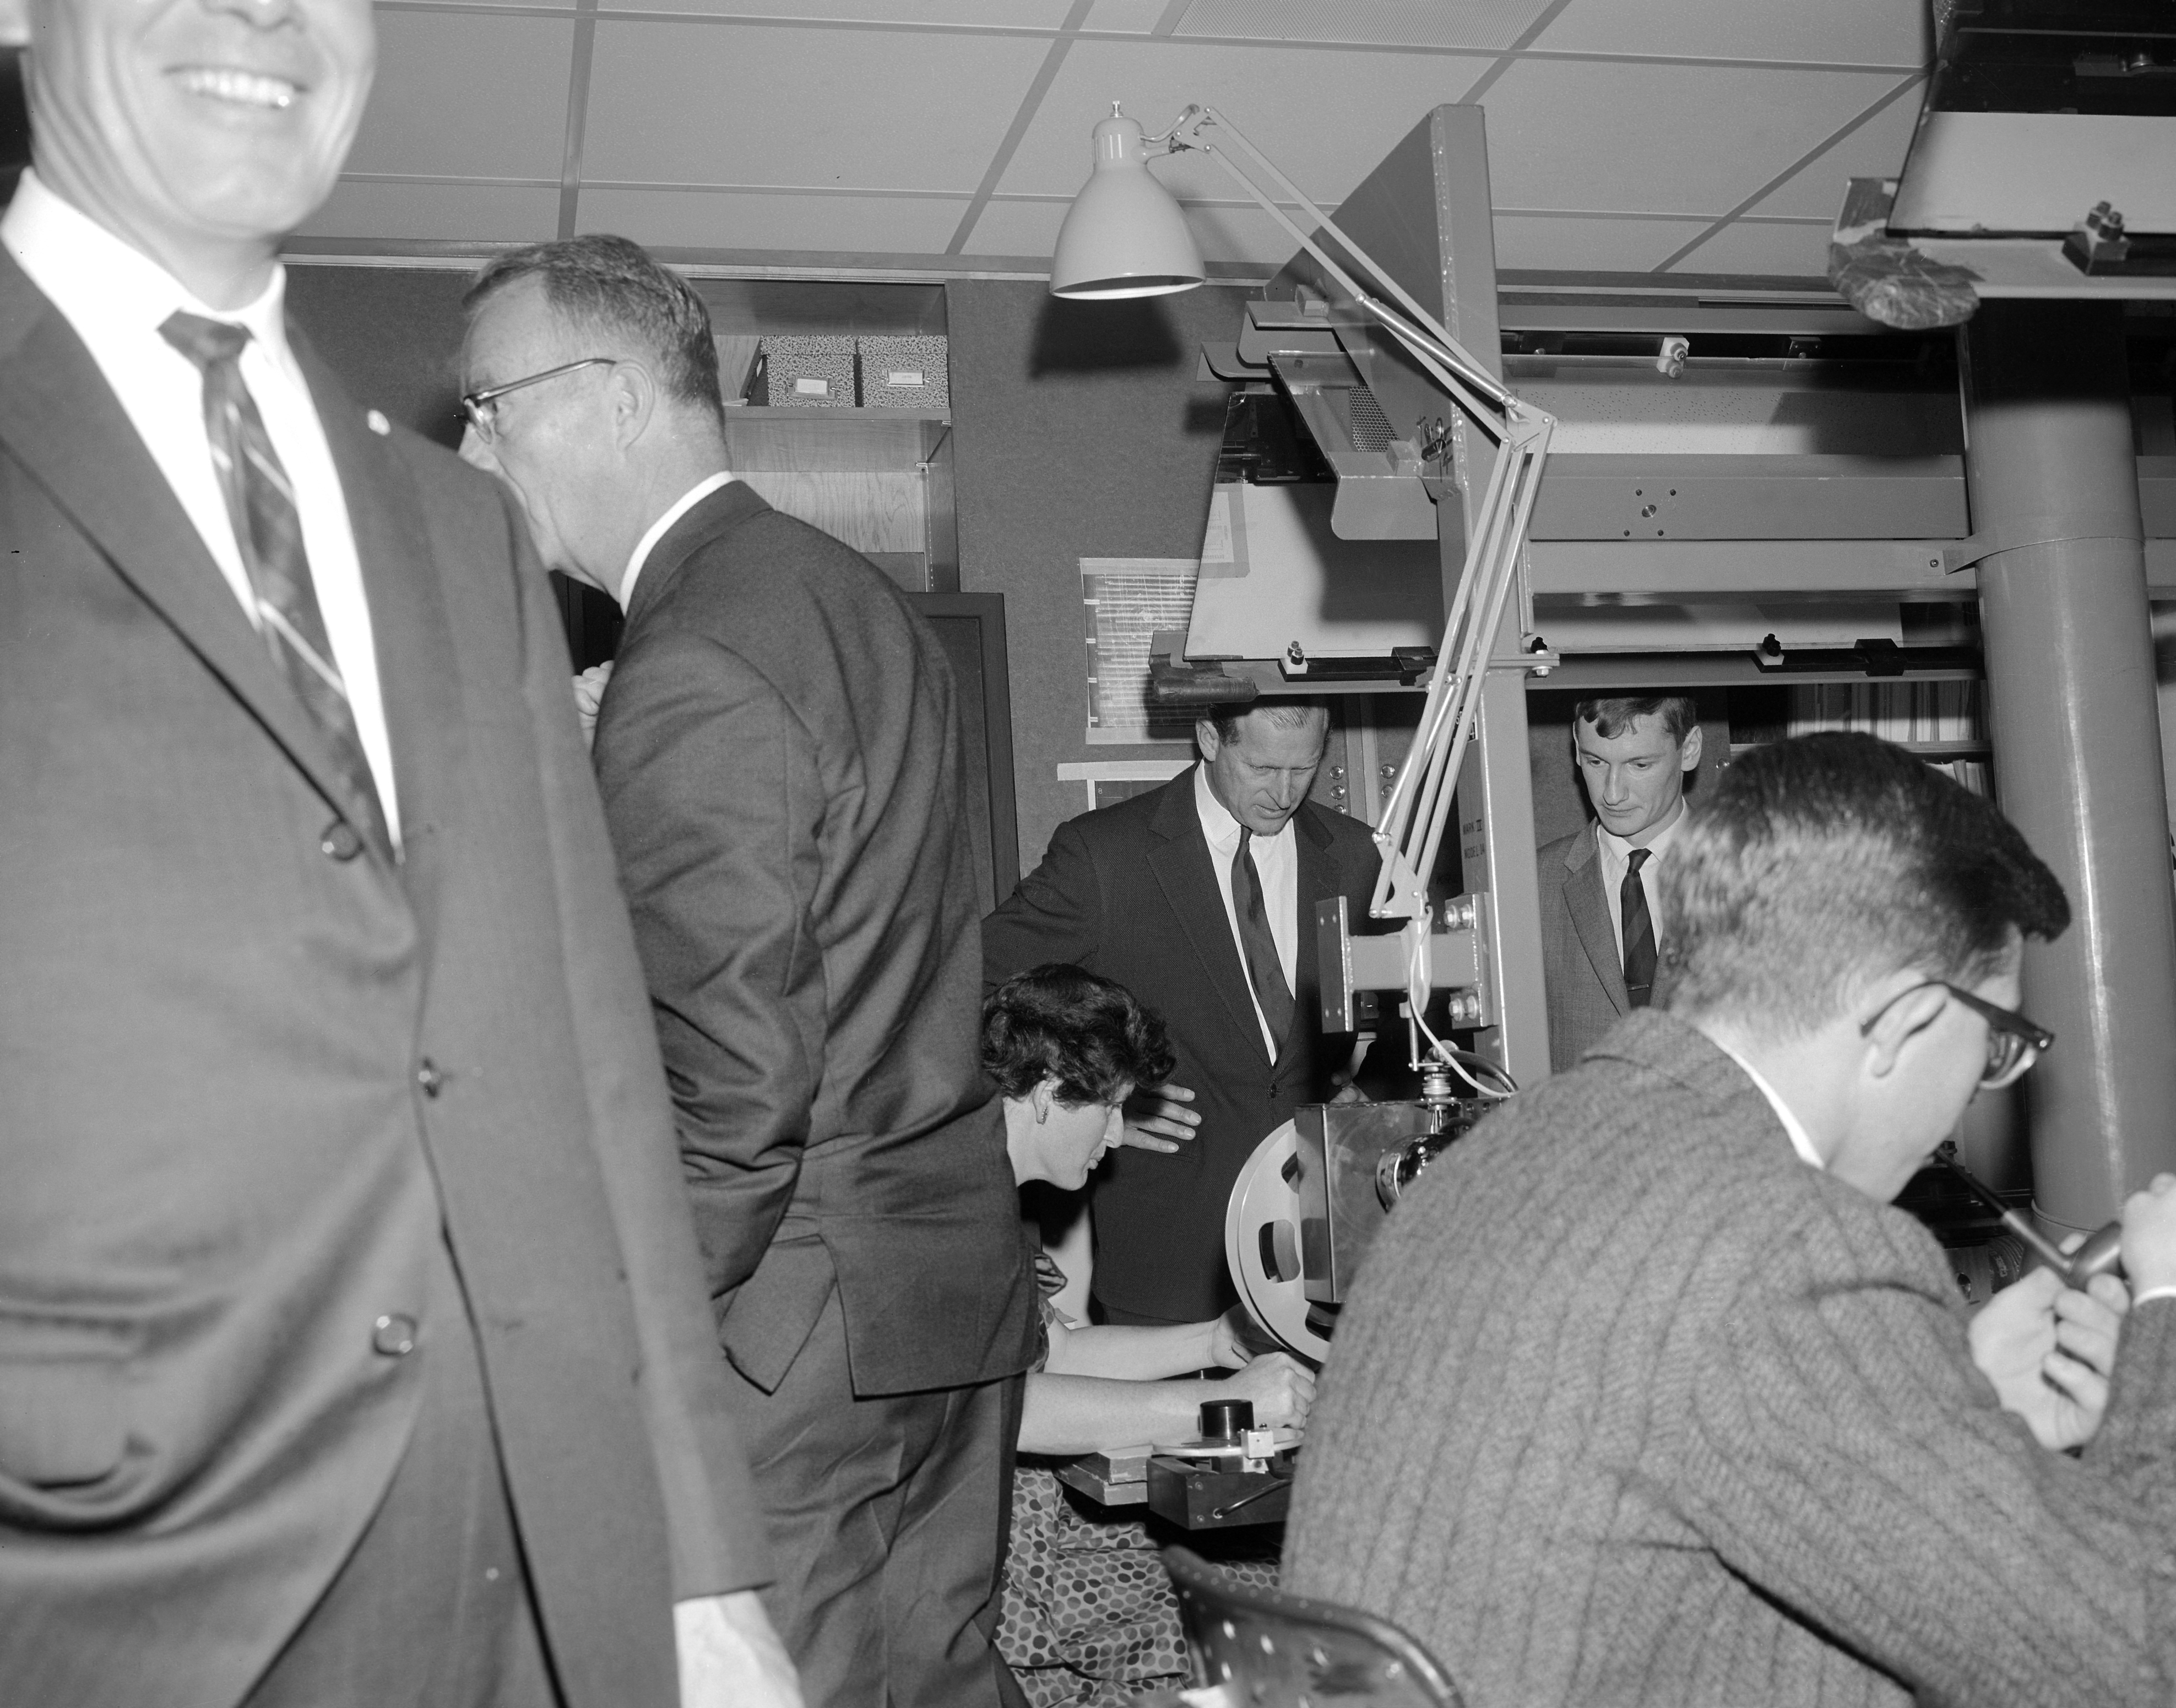 Fellow Brits Margaret Alston (seated, L.) and Peter Davey (standing, R.), guest scientists in the Alvarez Group, show His Royal Highness, Prince Philip of England, how bubble chamber films are scanned and measured in the group's data reduction center in Building 50. Photograph taken November 14, 1962. Morgue 1962-57(P-16). [Photograph by: George Kawaga]